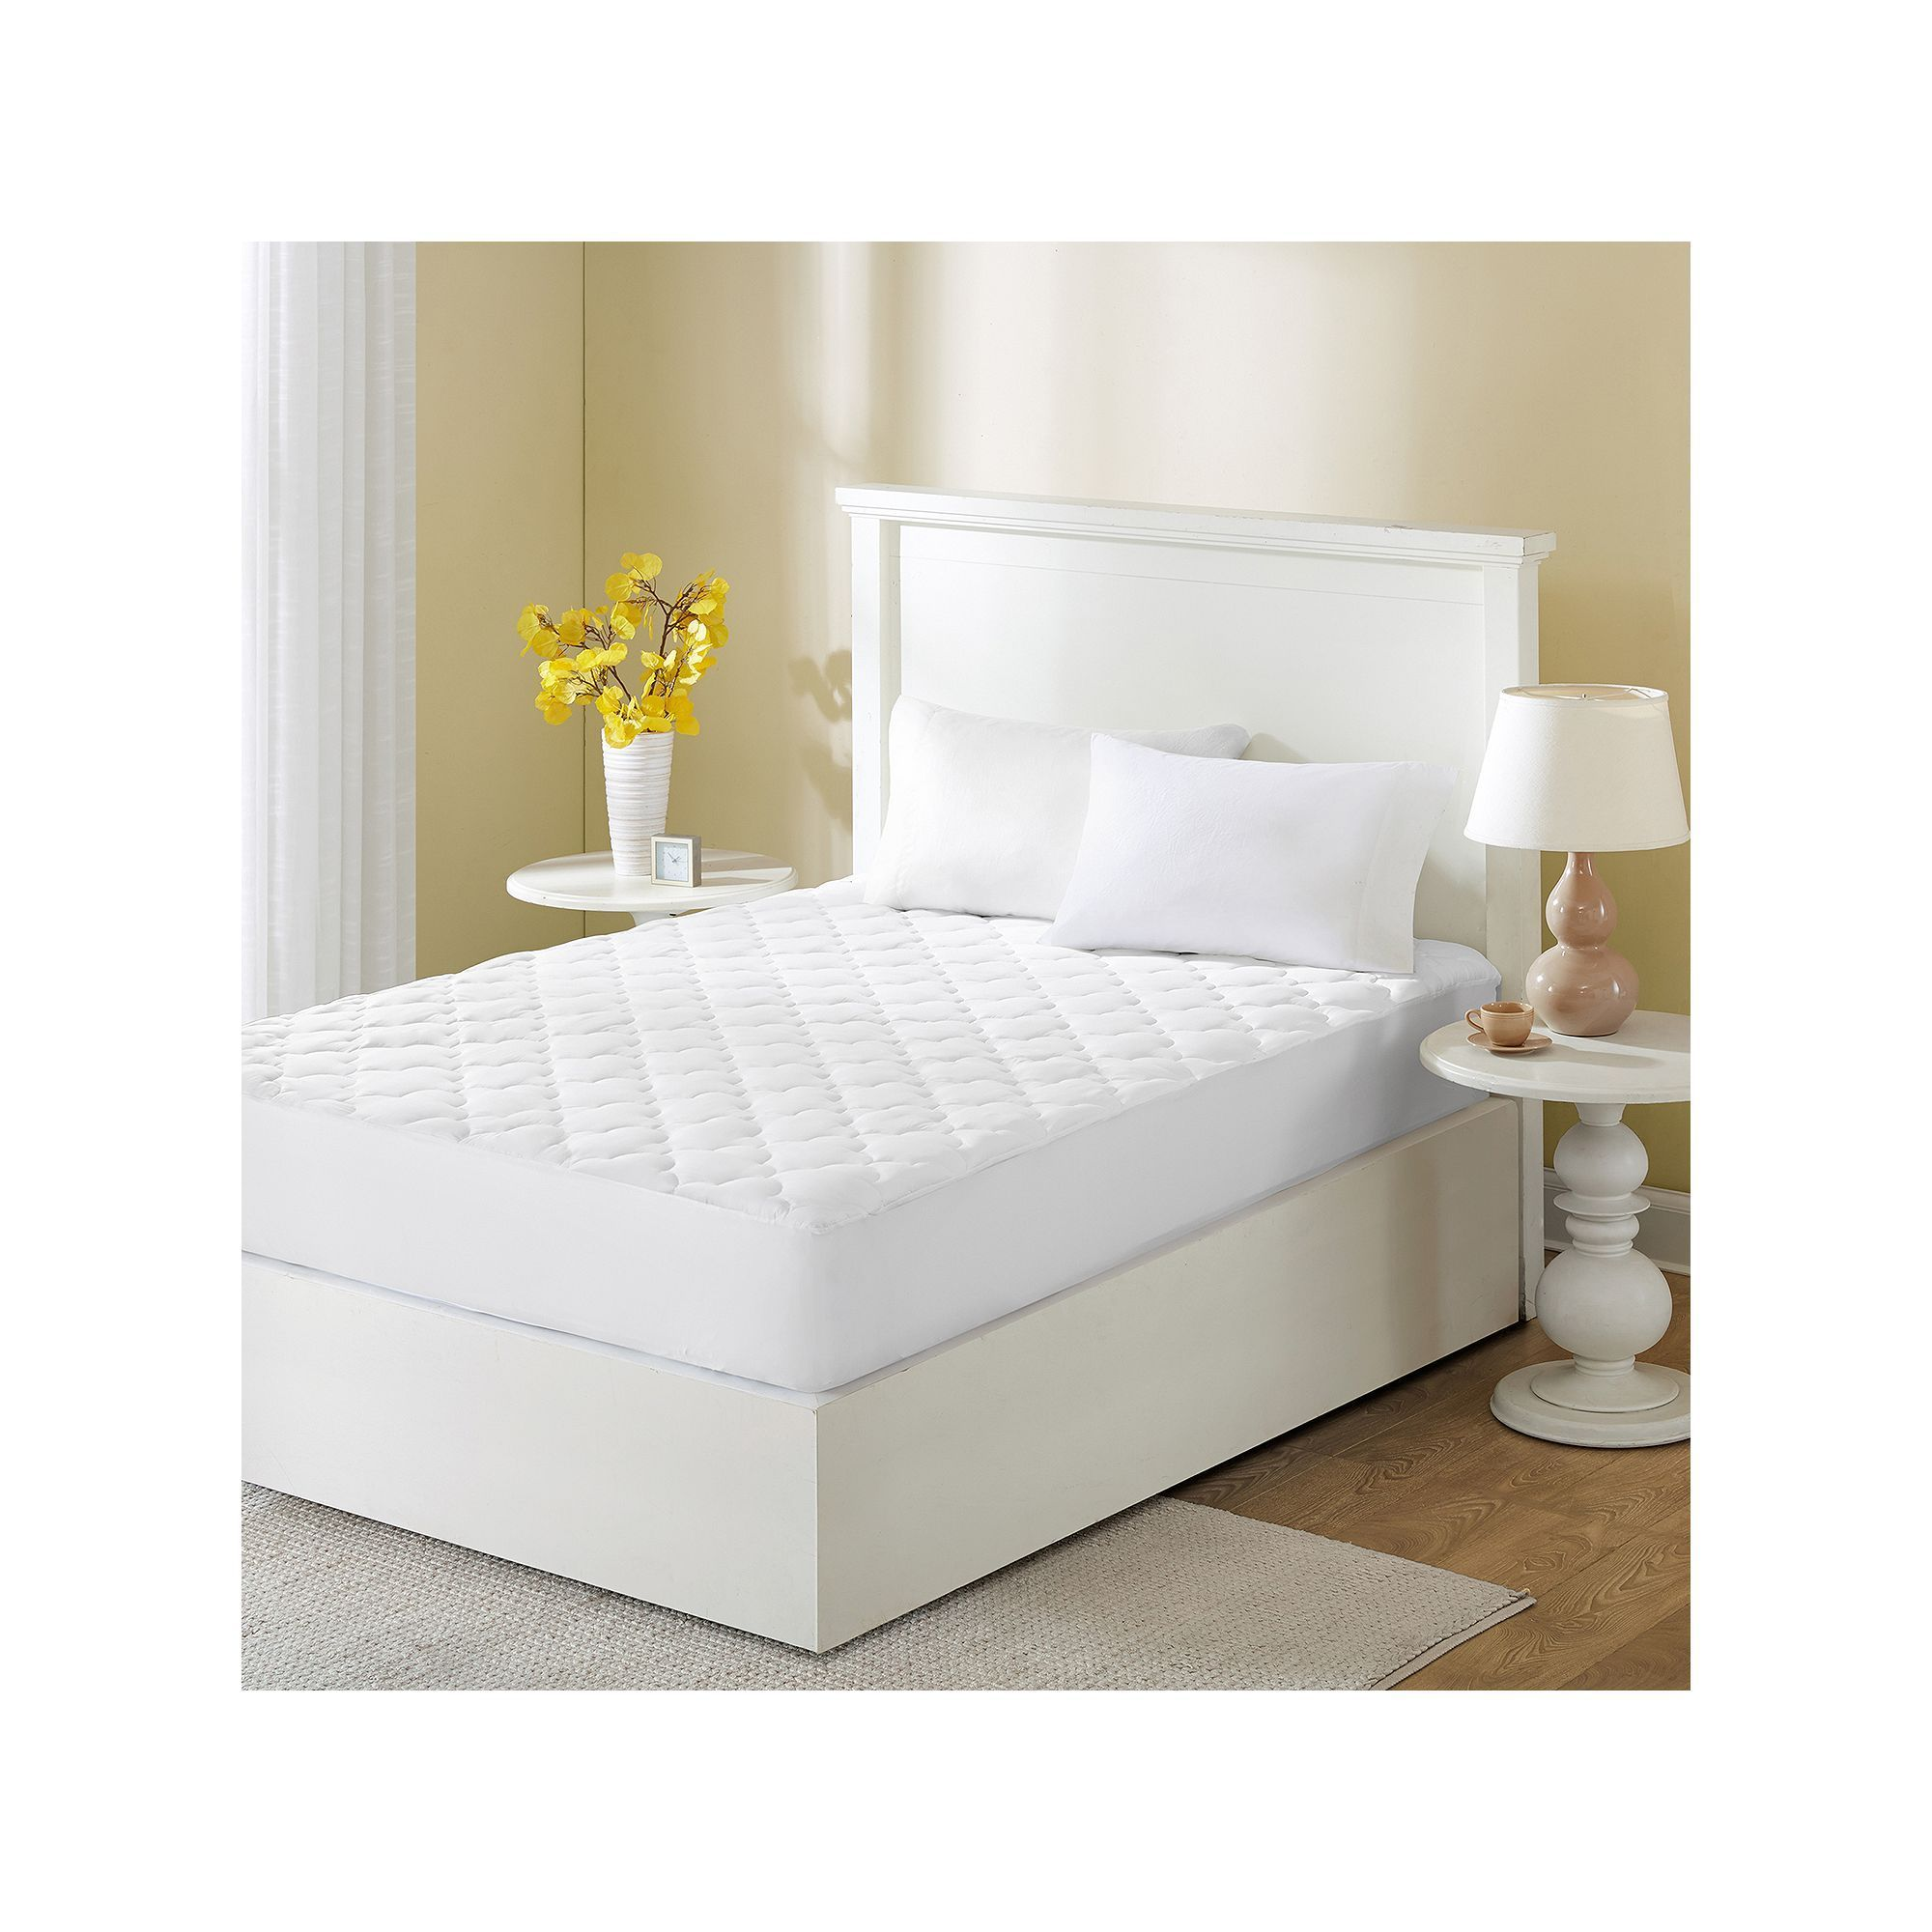 wonder wool by sleep philosophy 300 thread count mattress pad white